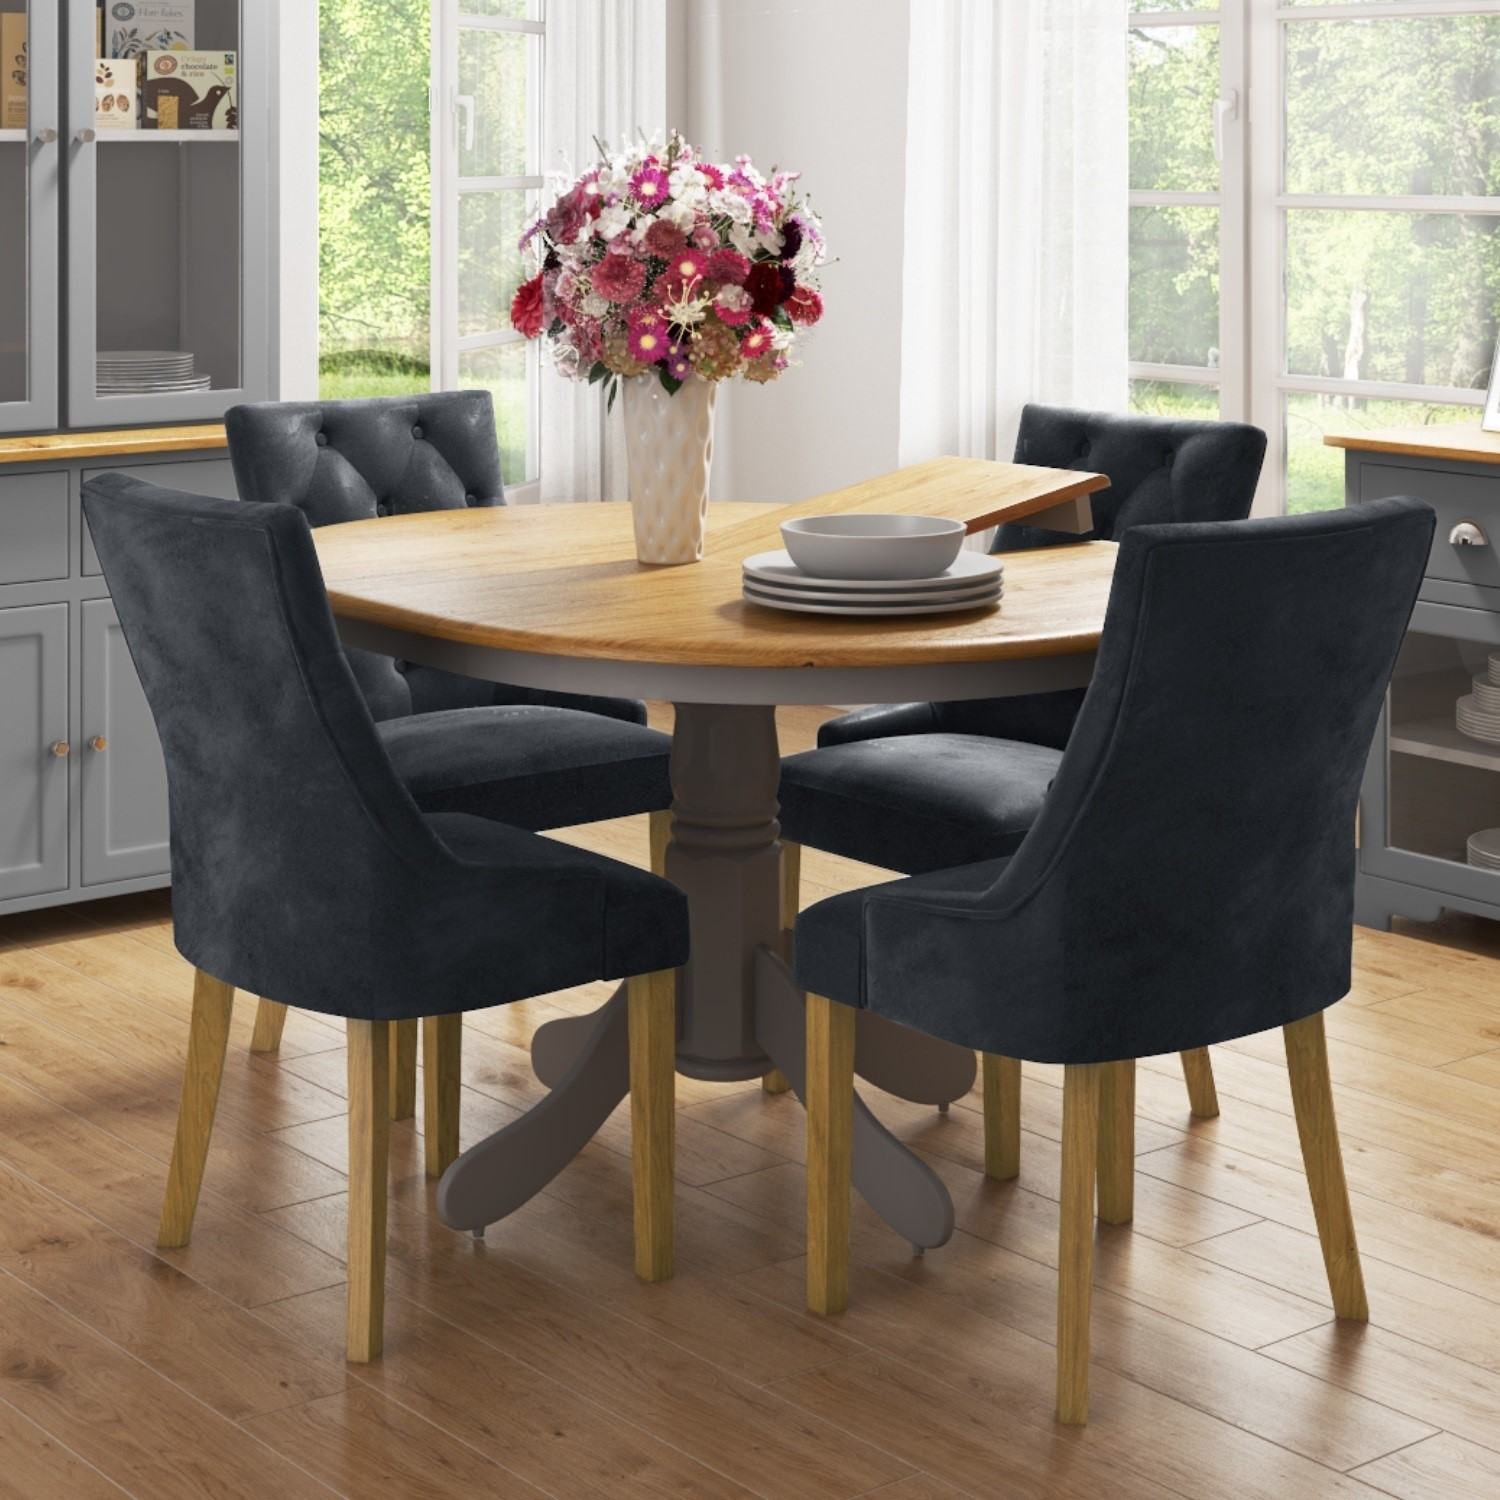 Round Extendable Dining Table with 4 Velvet Chairs in Grey &